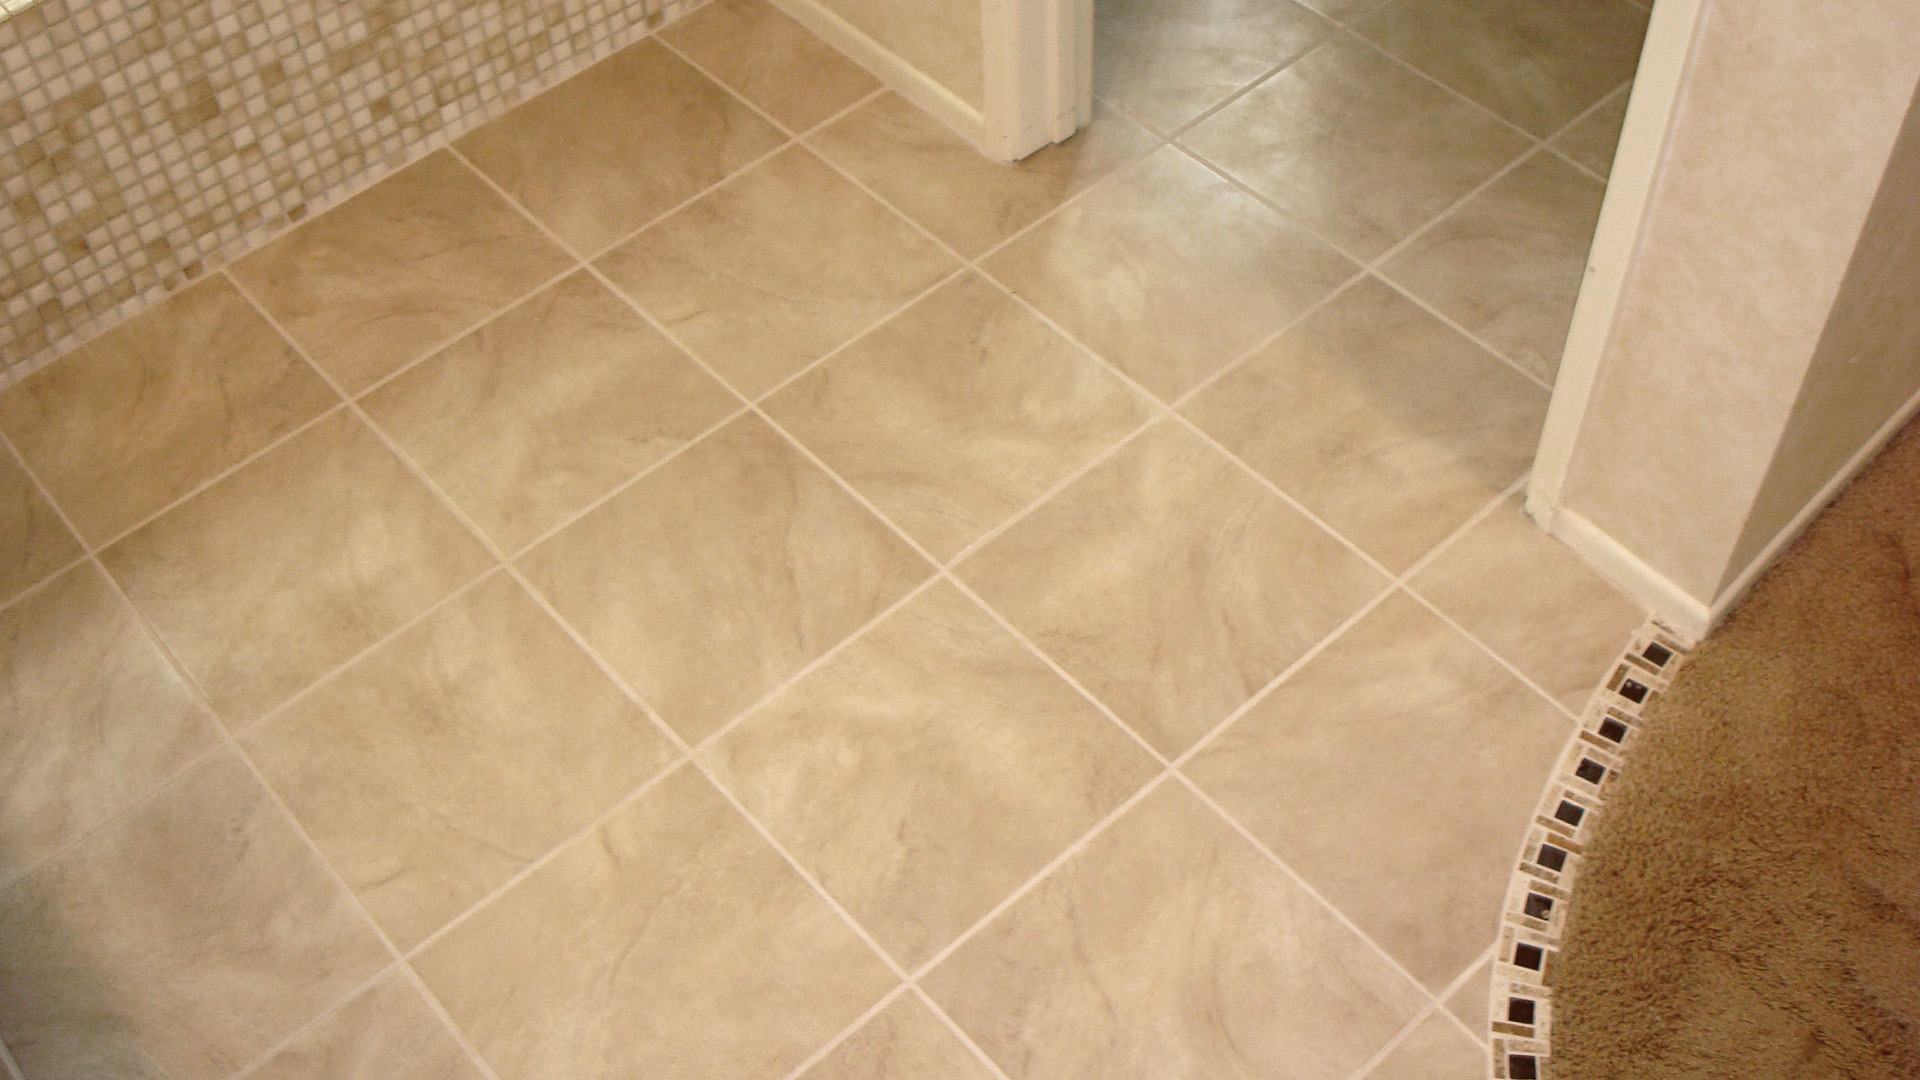 Tile a bathroom floor - 1 2 3 4 5